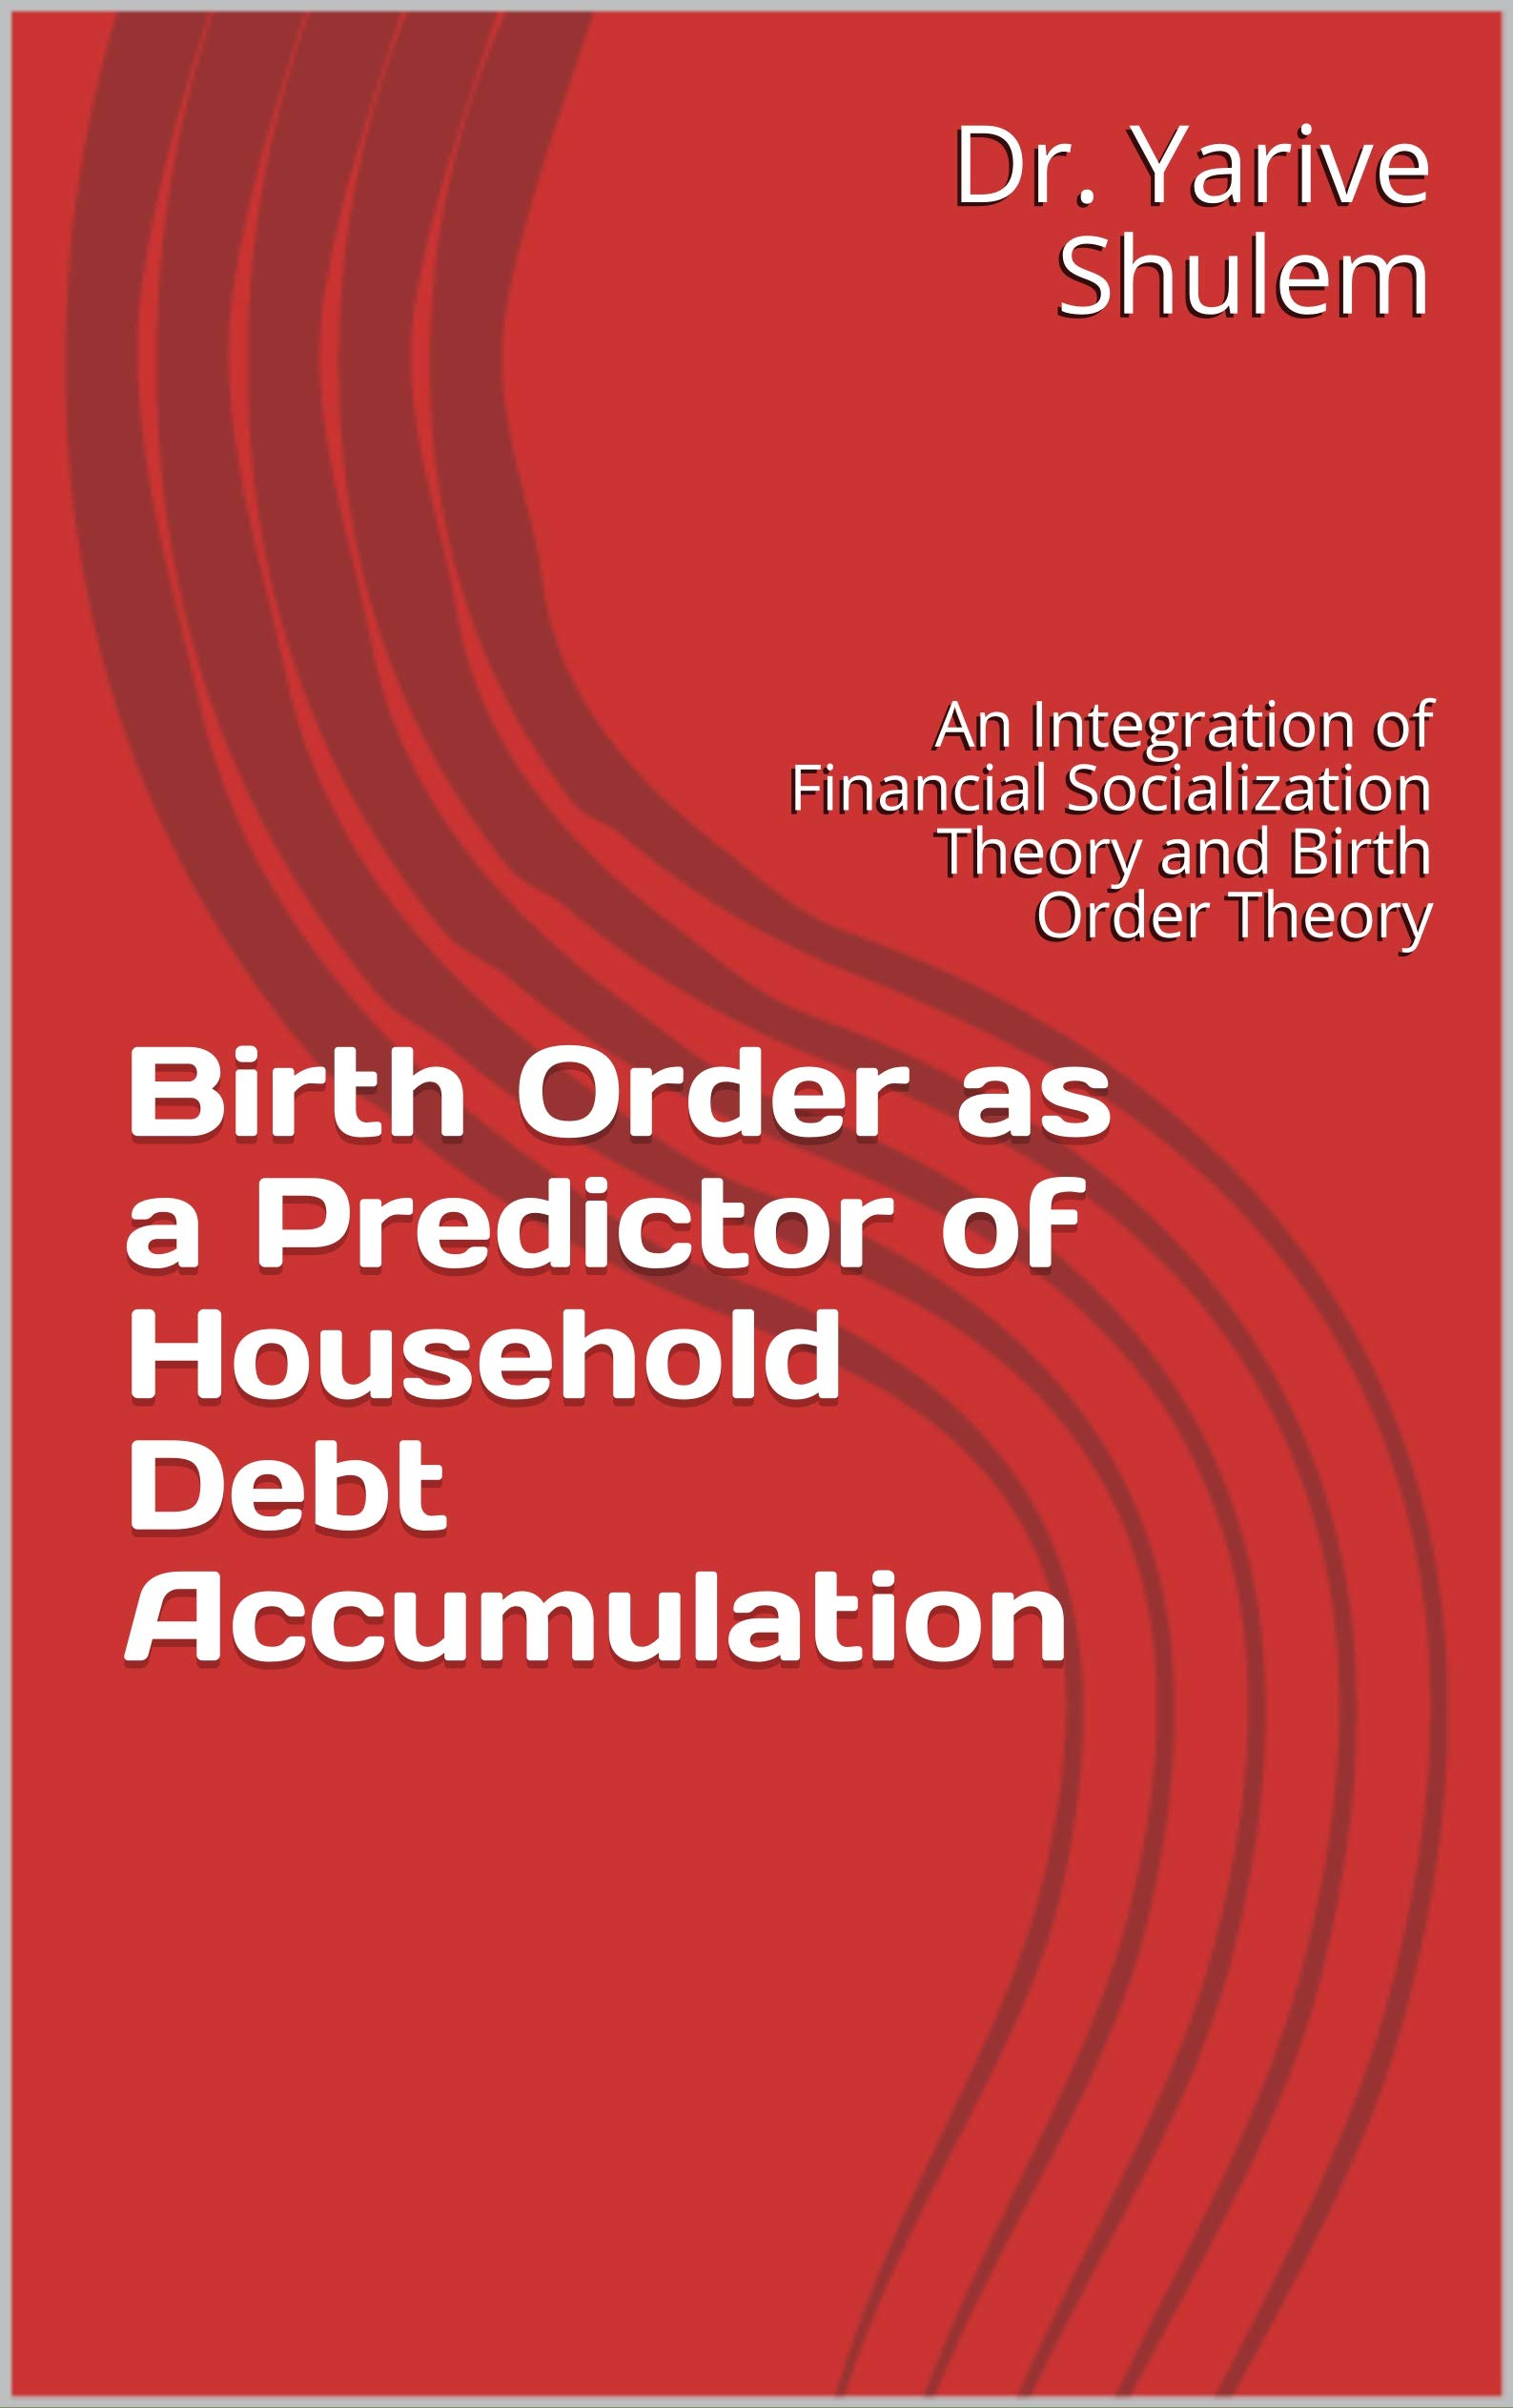 Birth Order as a Predictor of Household Debt Accumulation: An Integration of Financial Socialization Theory and Birth Order Theory